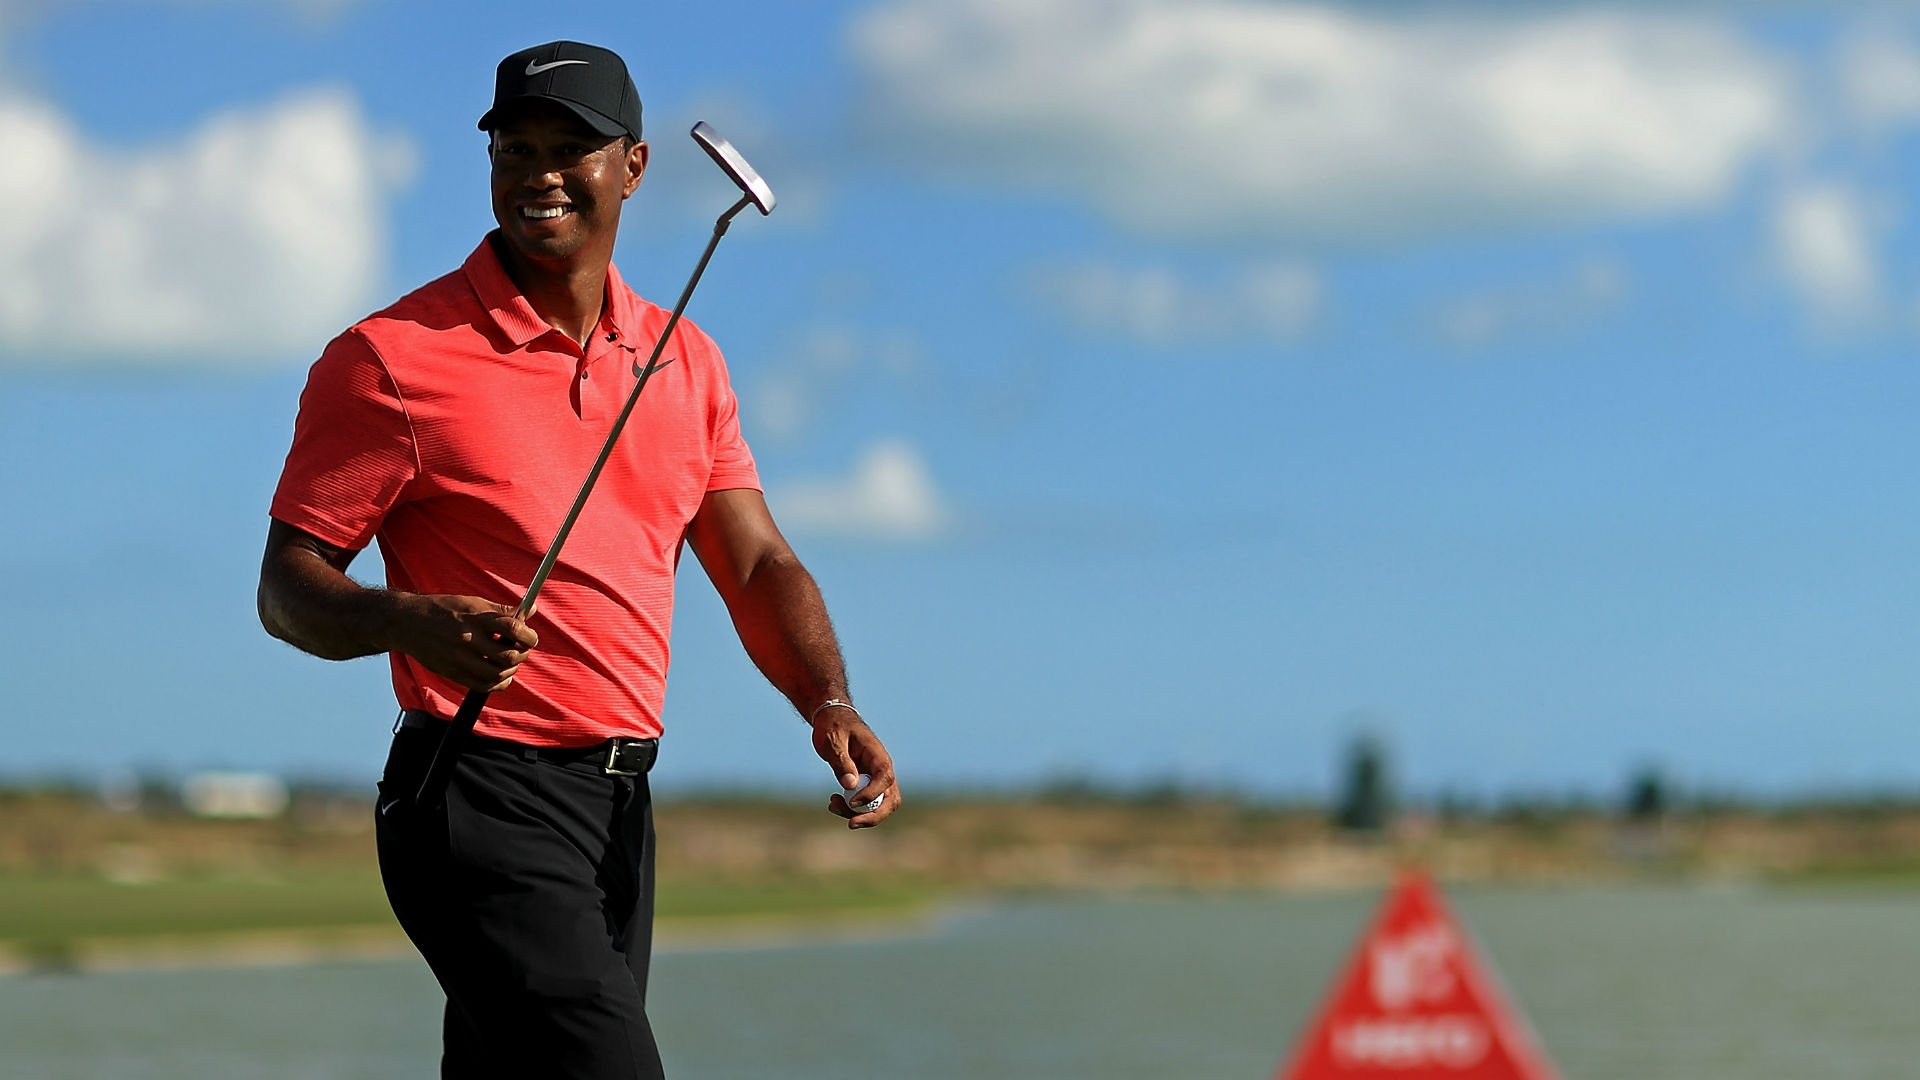 Tiger Woods may have another major title in him, former coach Butch Harmon says